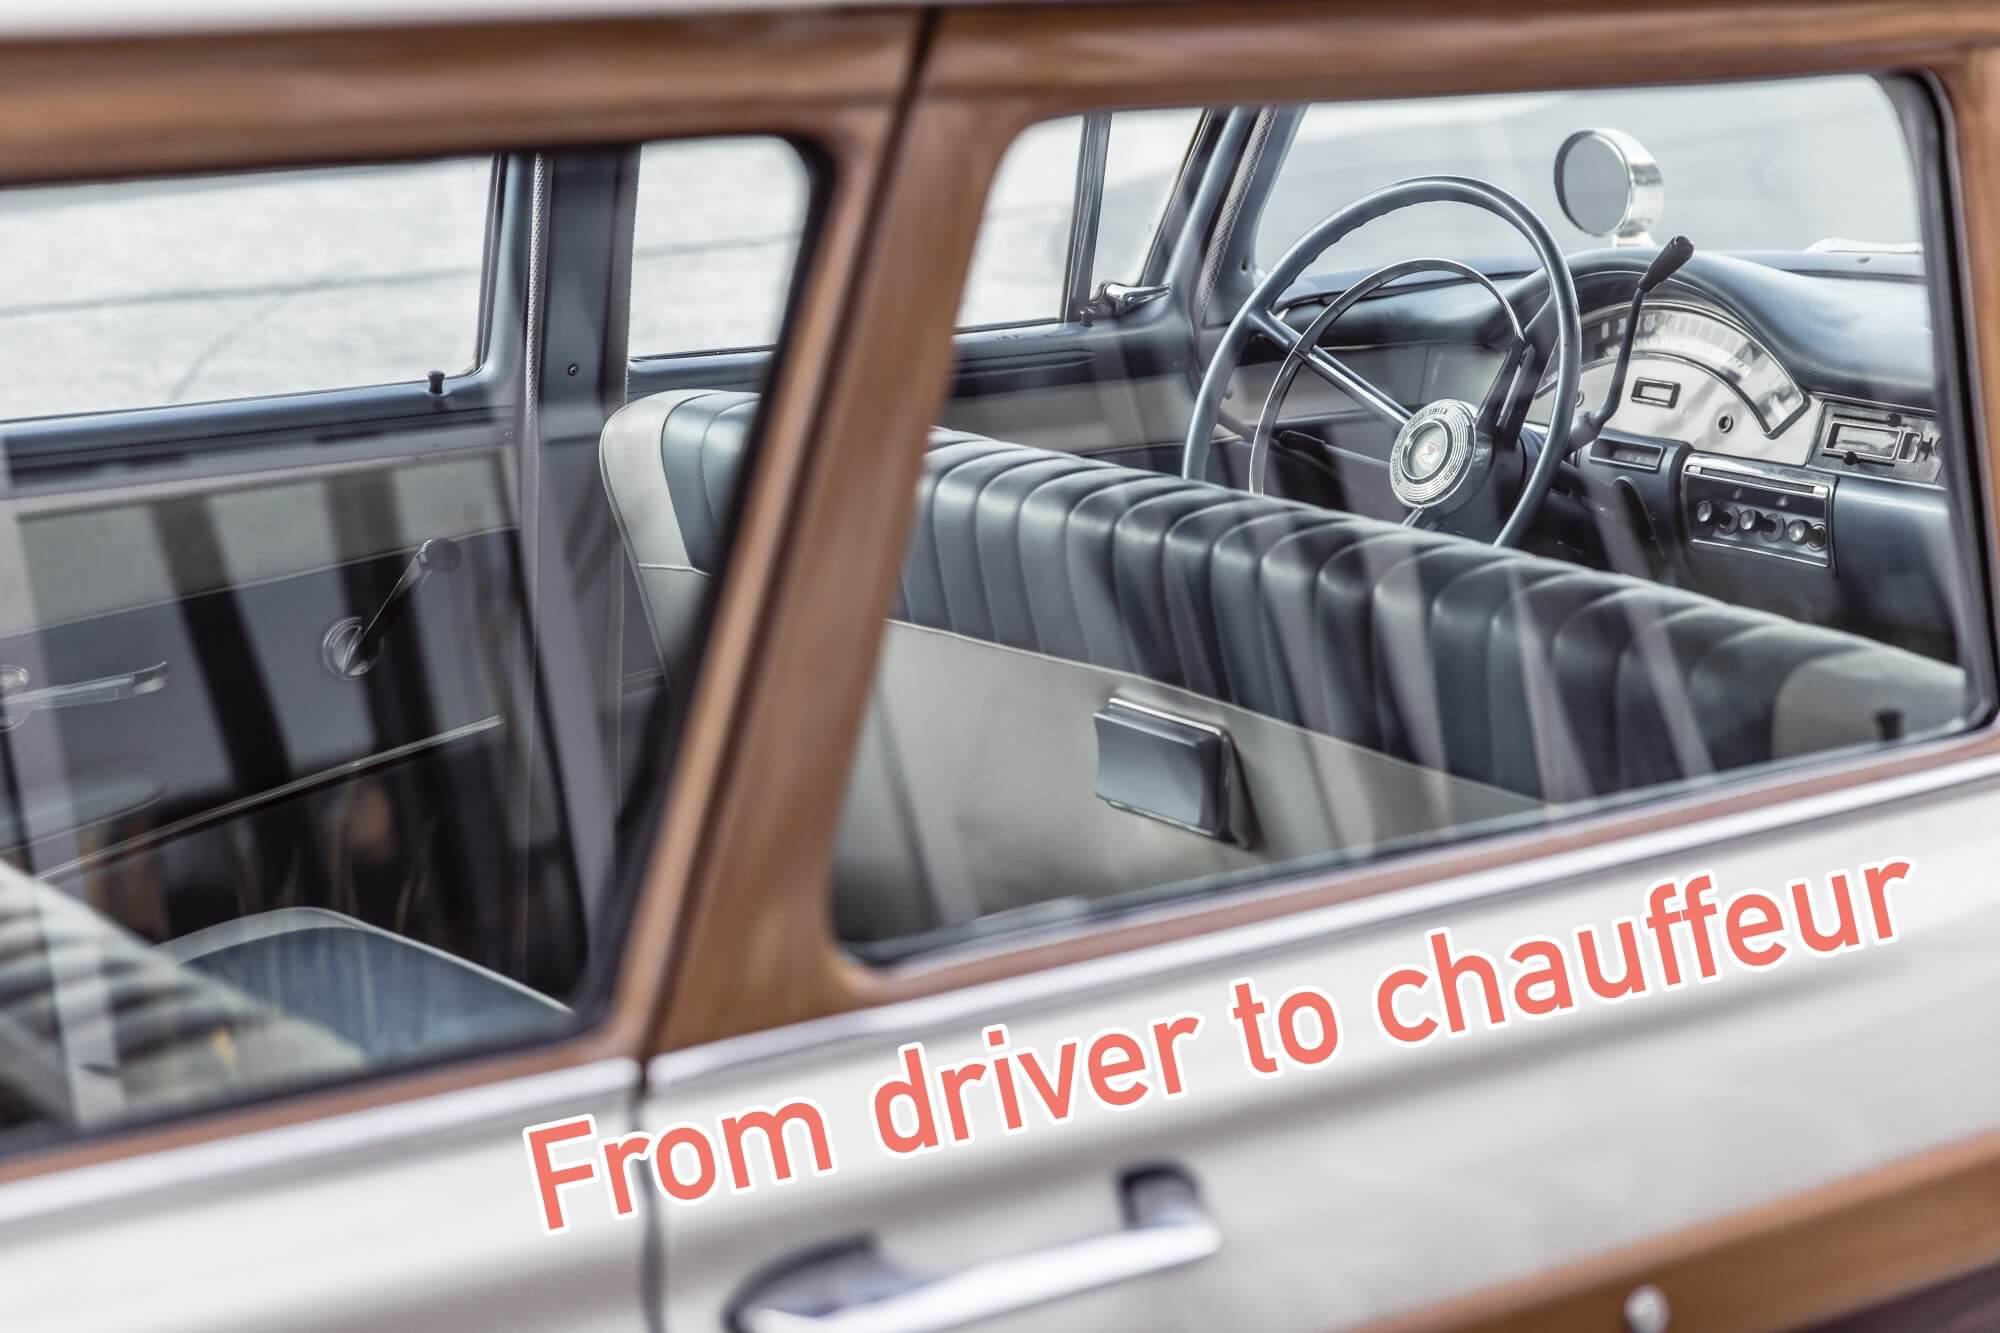 From driver to chauffeur